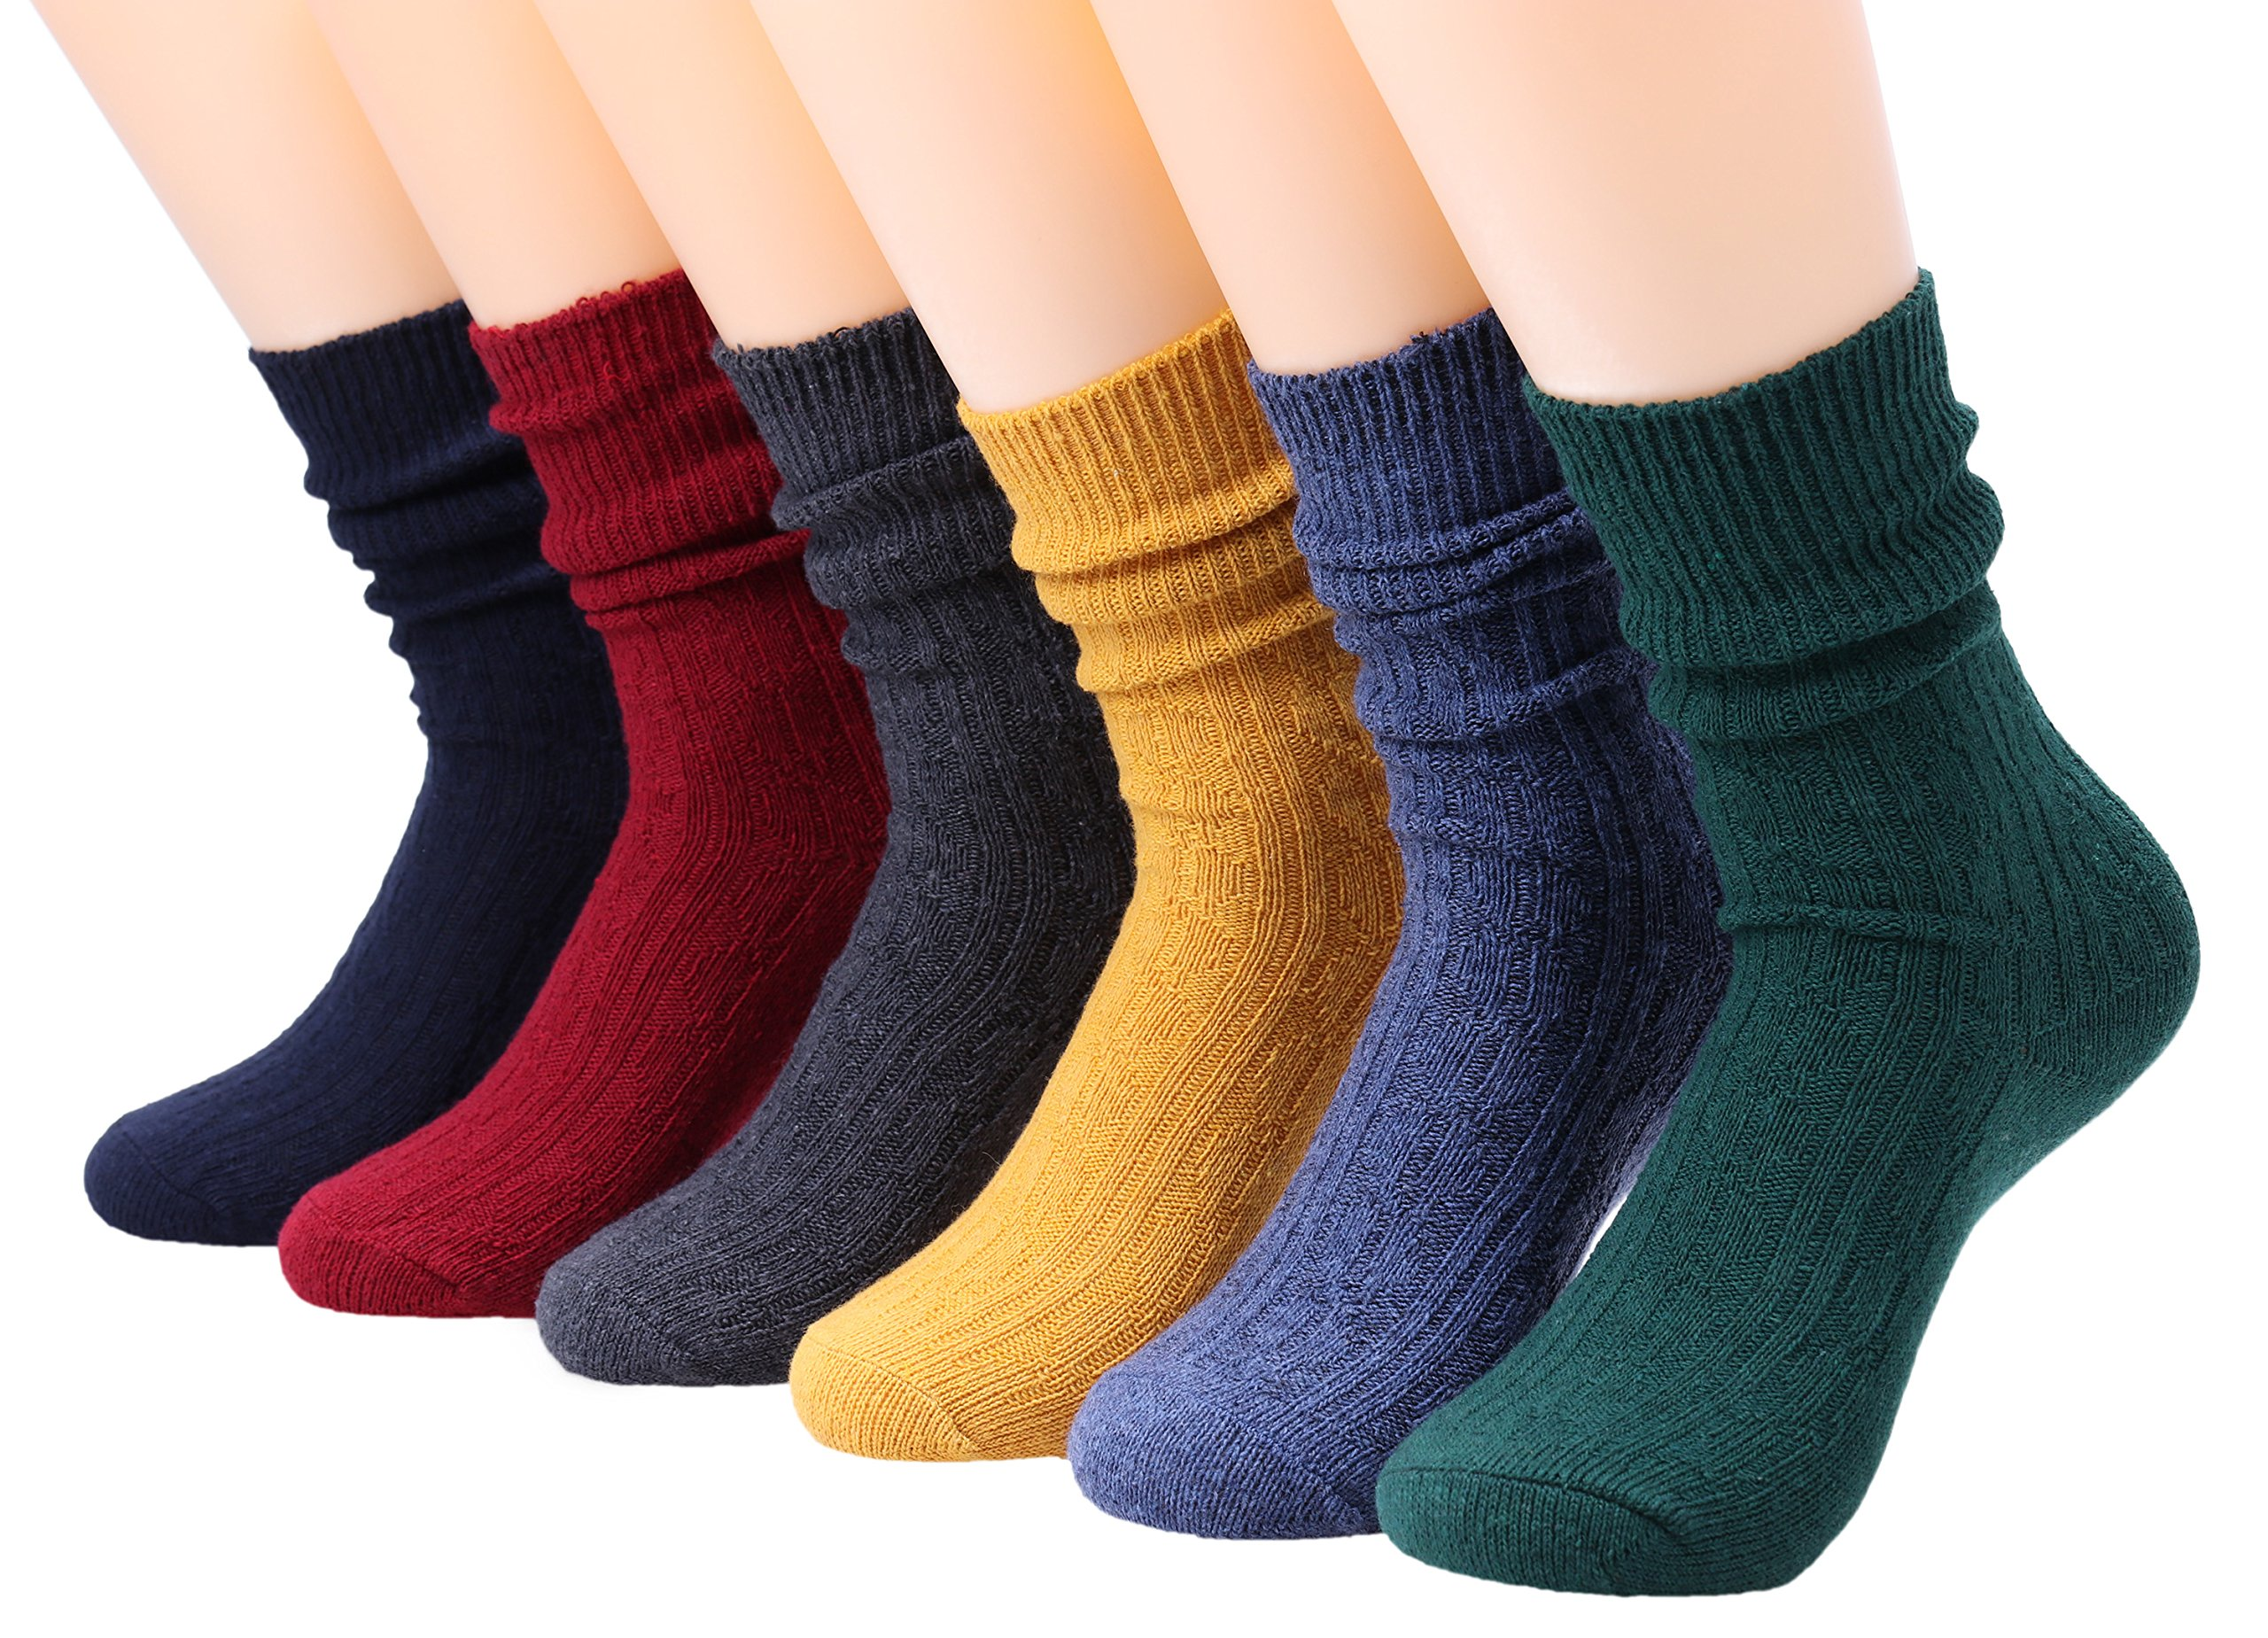 6 Pairs Womens Cotton Blended Knitted Boot Crew Socks Colorful 5-10 WS88 (Mixed)